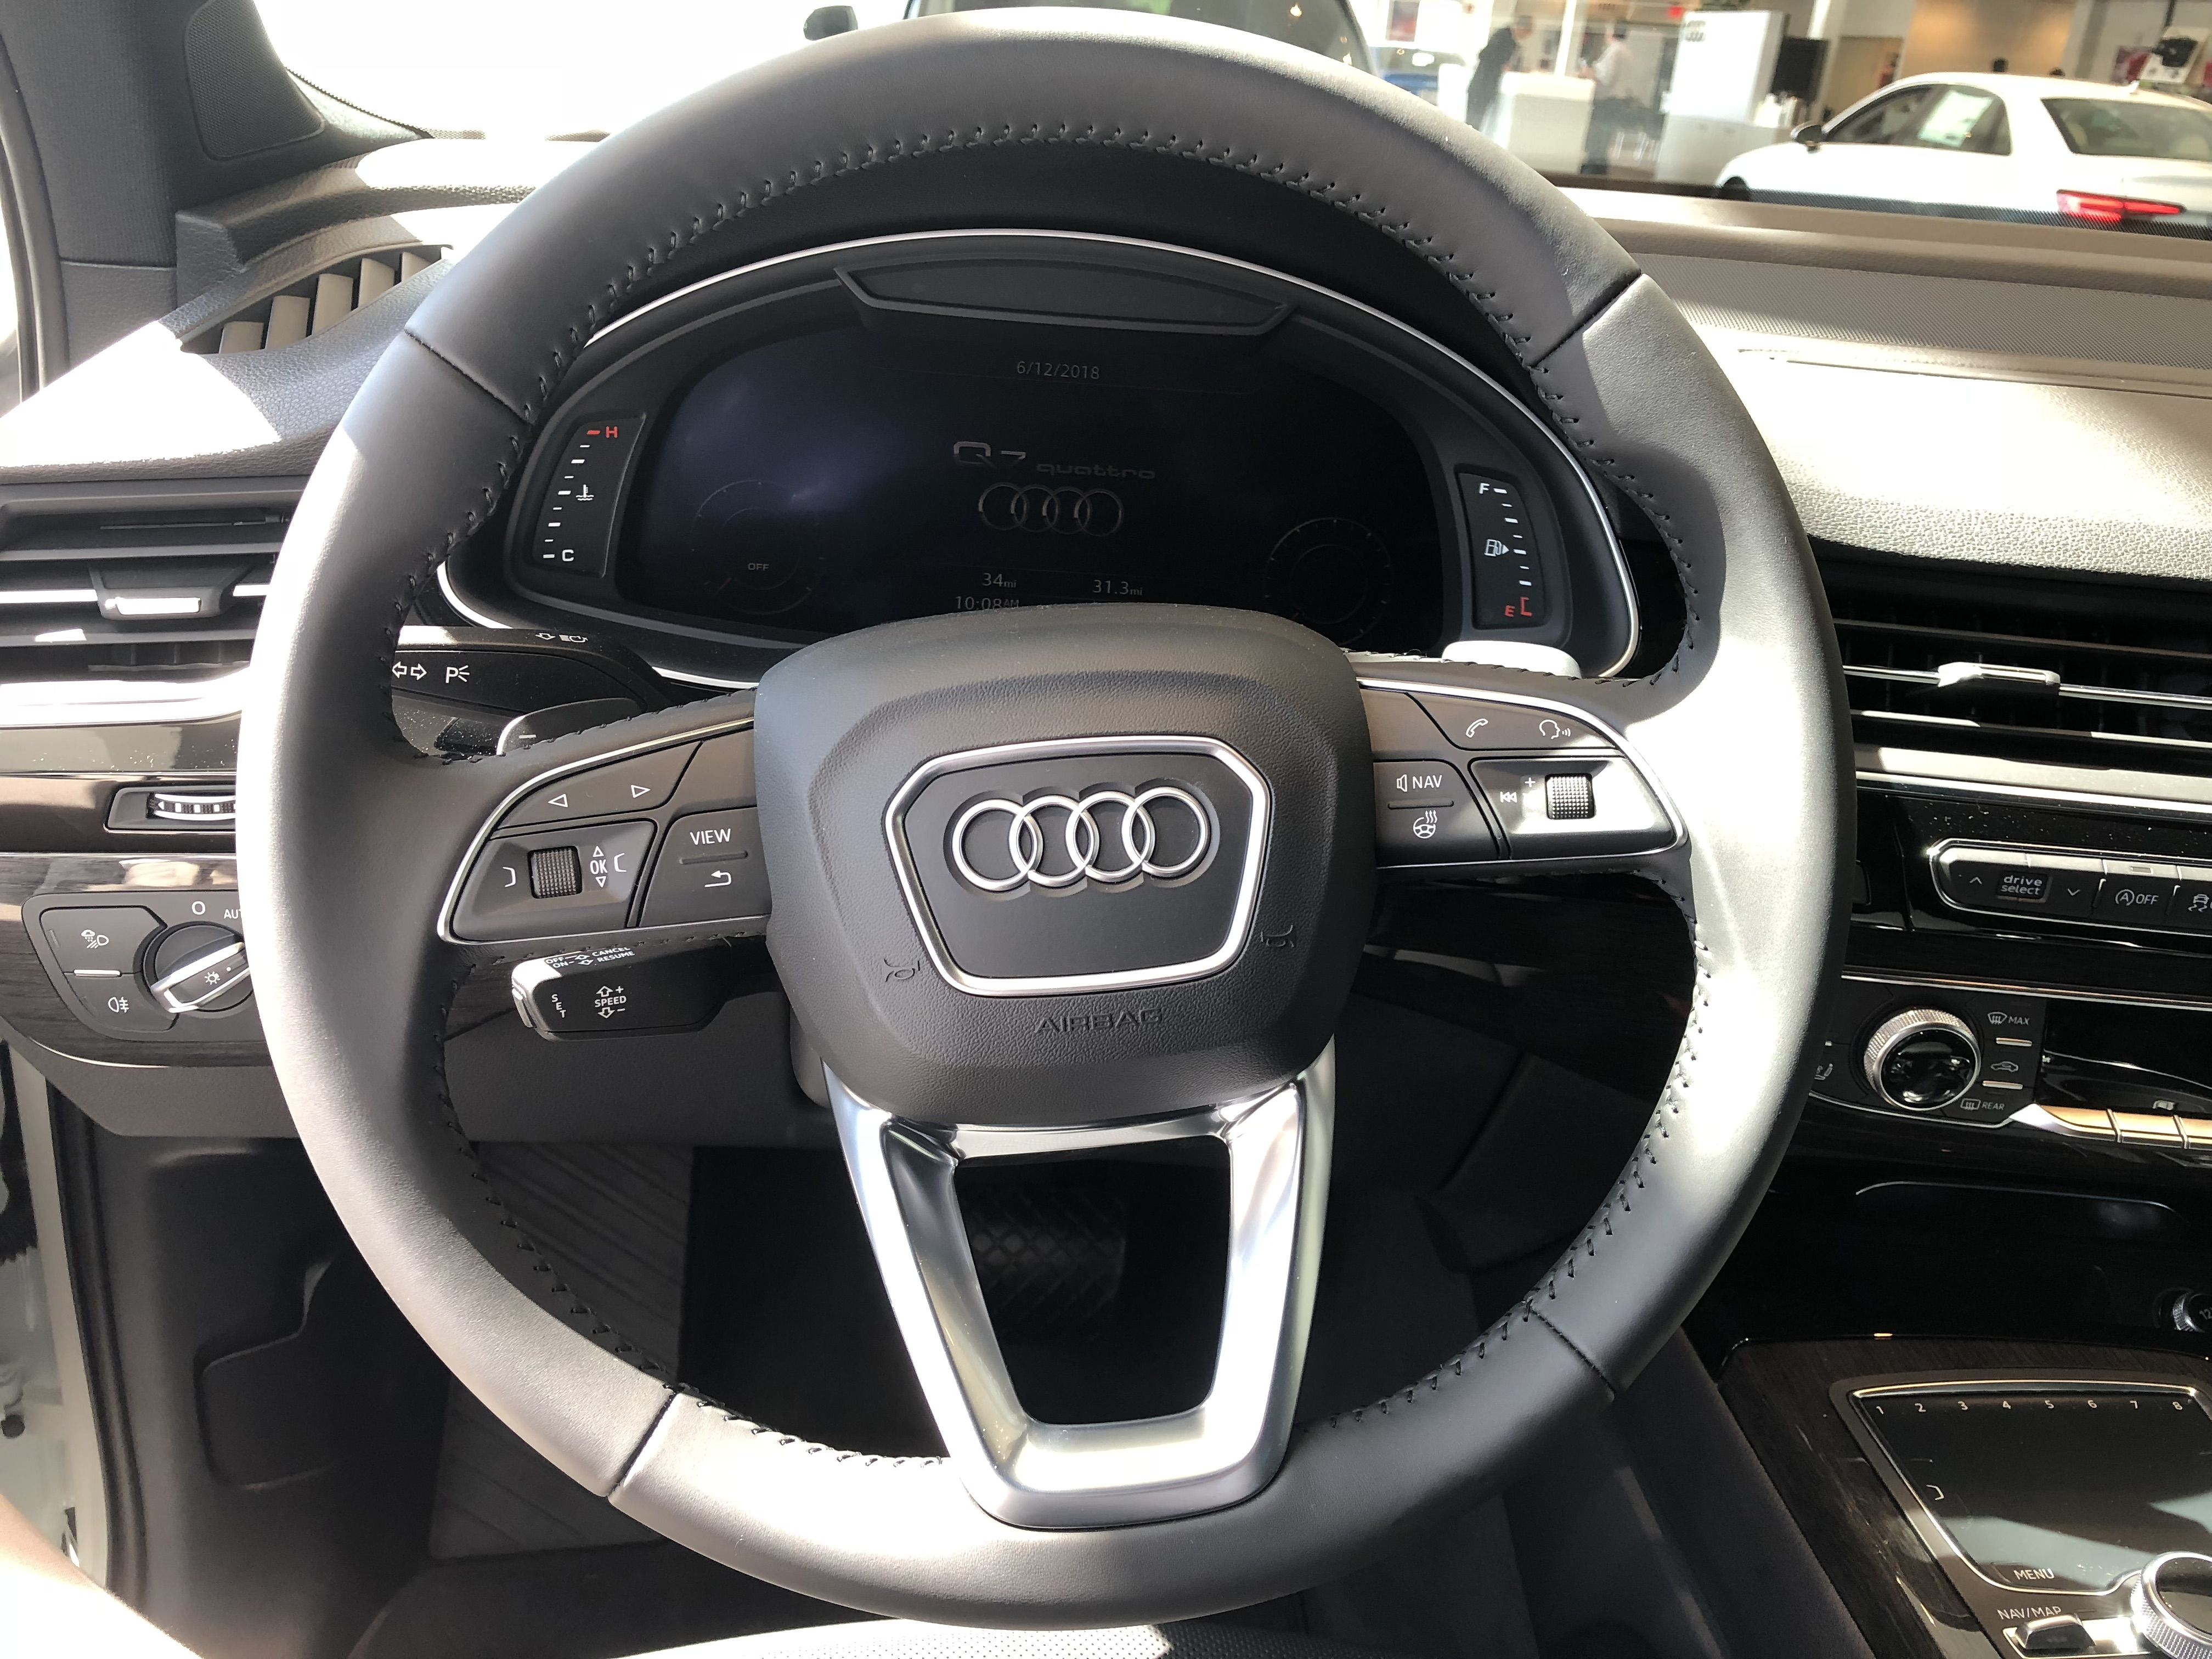 Steering Wheel Virtual Dashboard On The 2018 Audi Q7 With Black